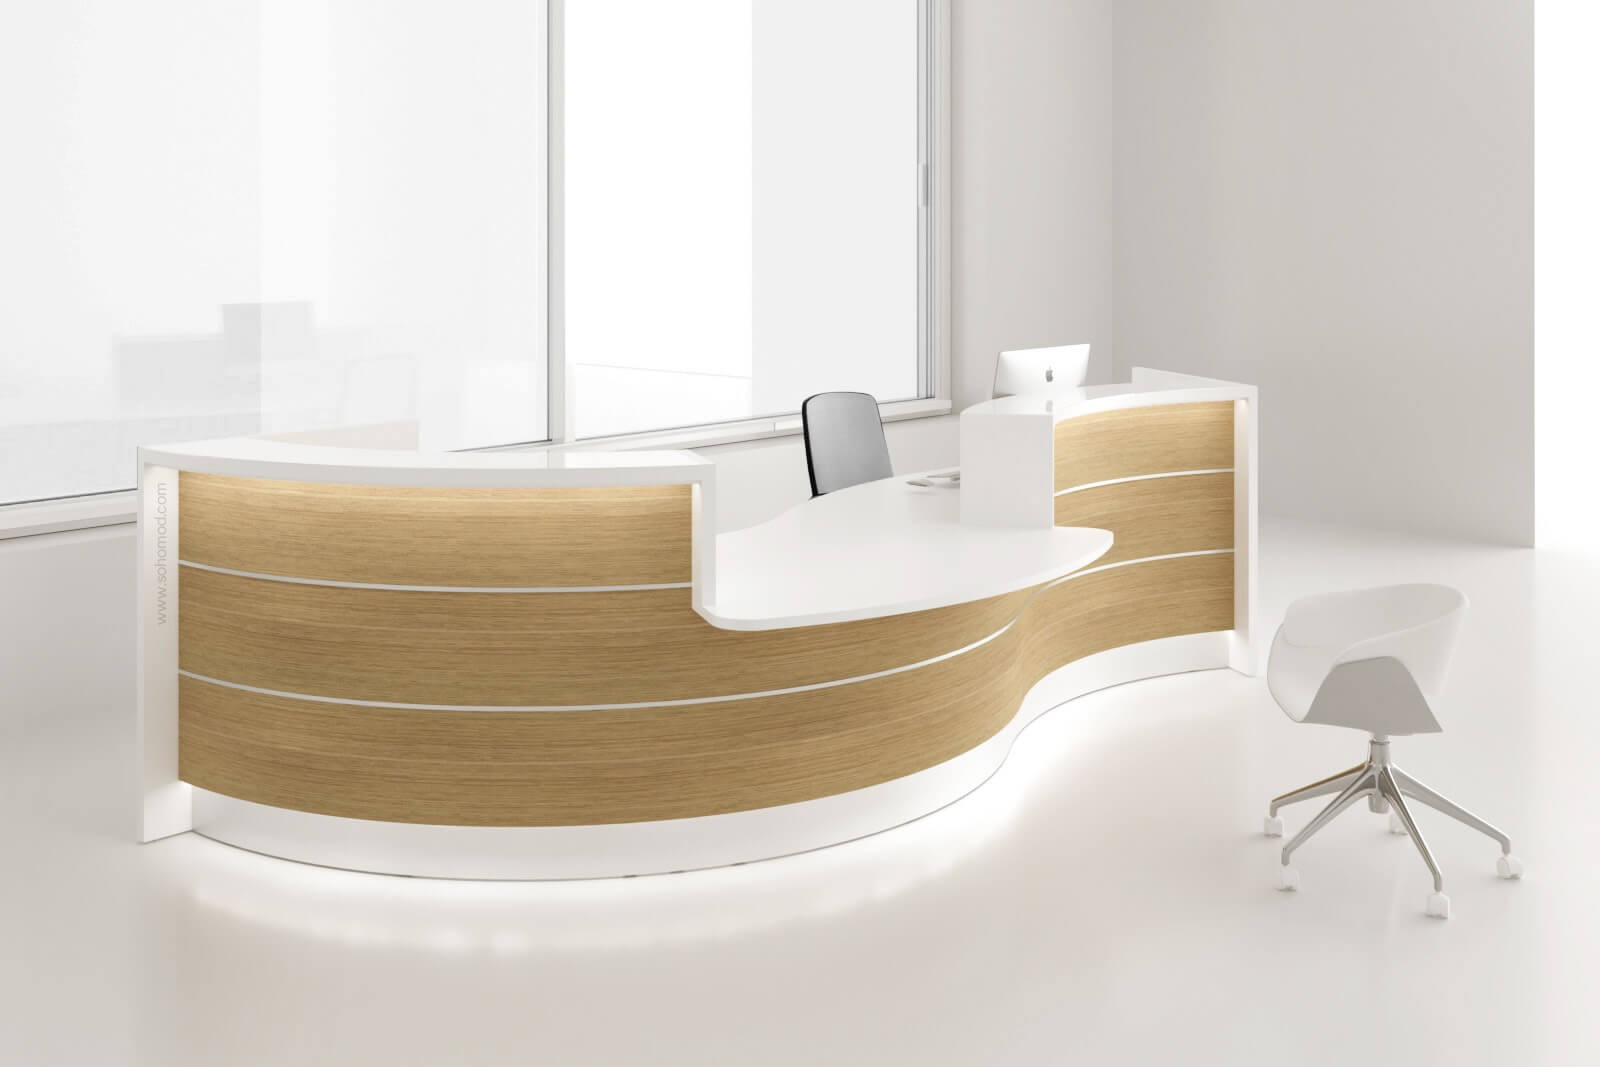 Valde Curved Reception Desk W Counter Top By Mdd Office